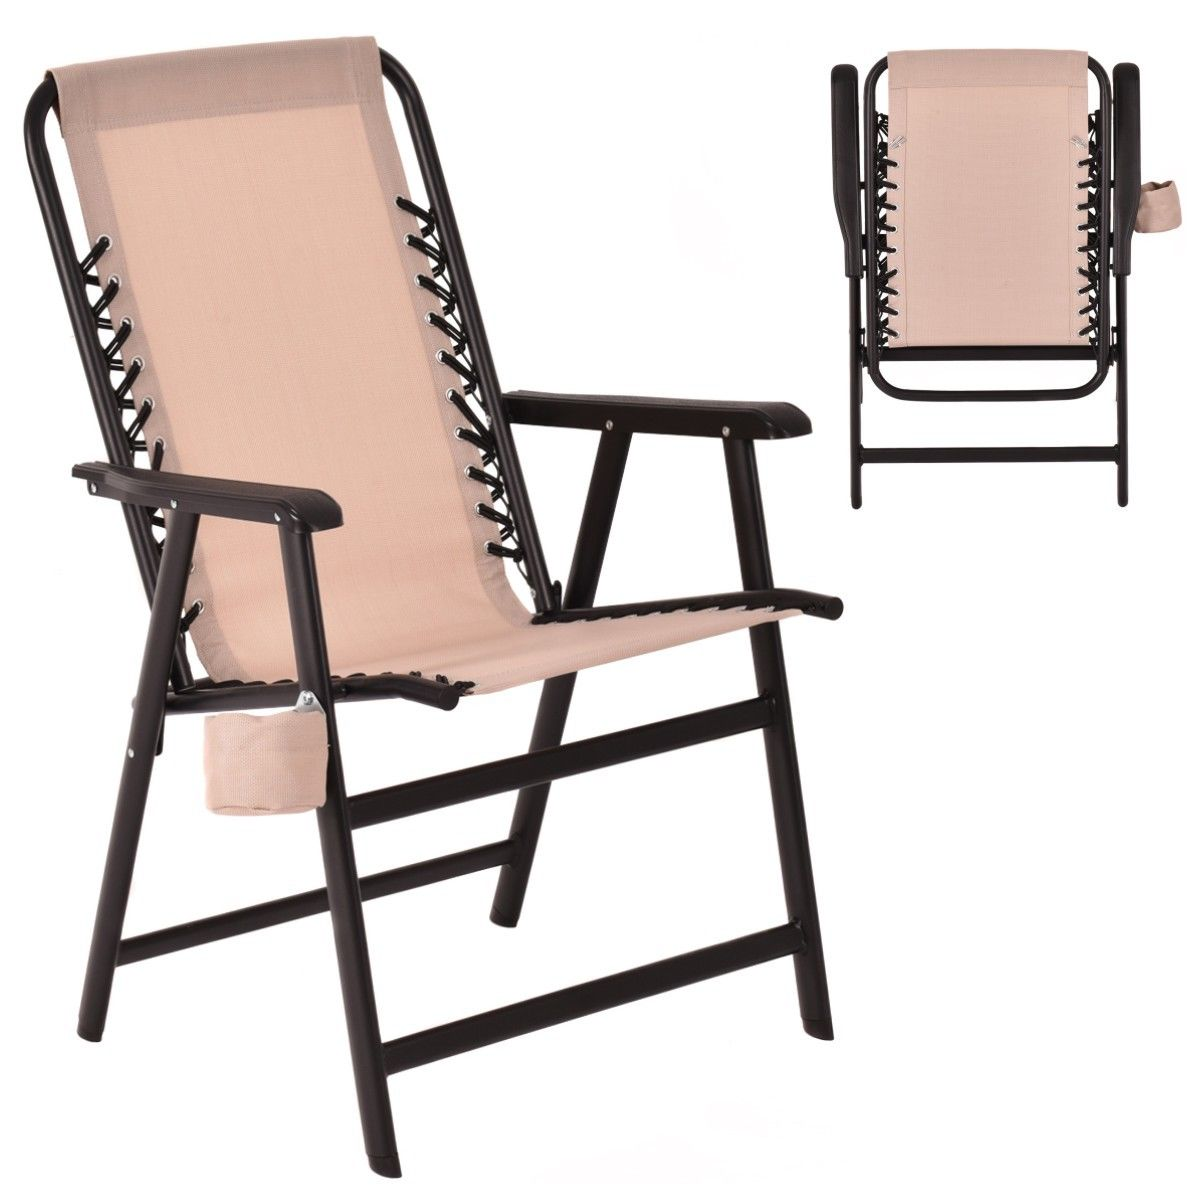 Folding Steel Frame Outddoor Arm Chair W  Cup Holder 7826248